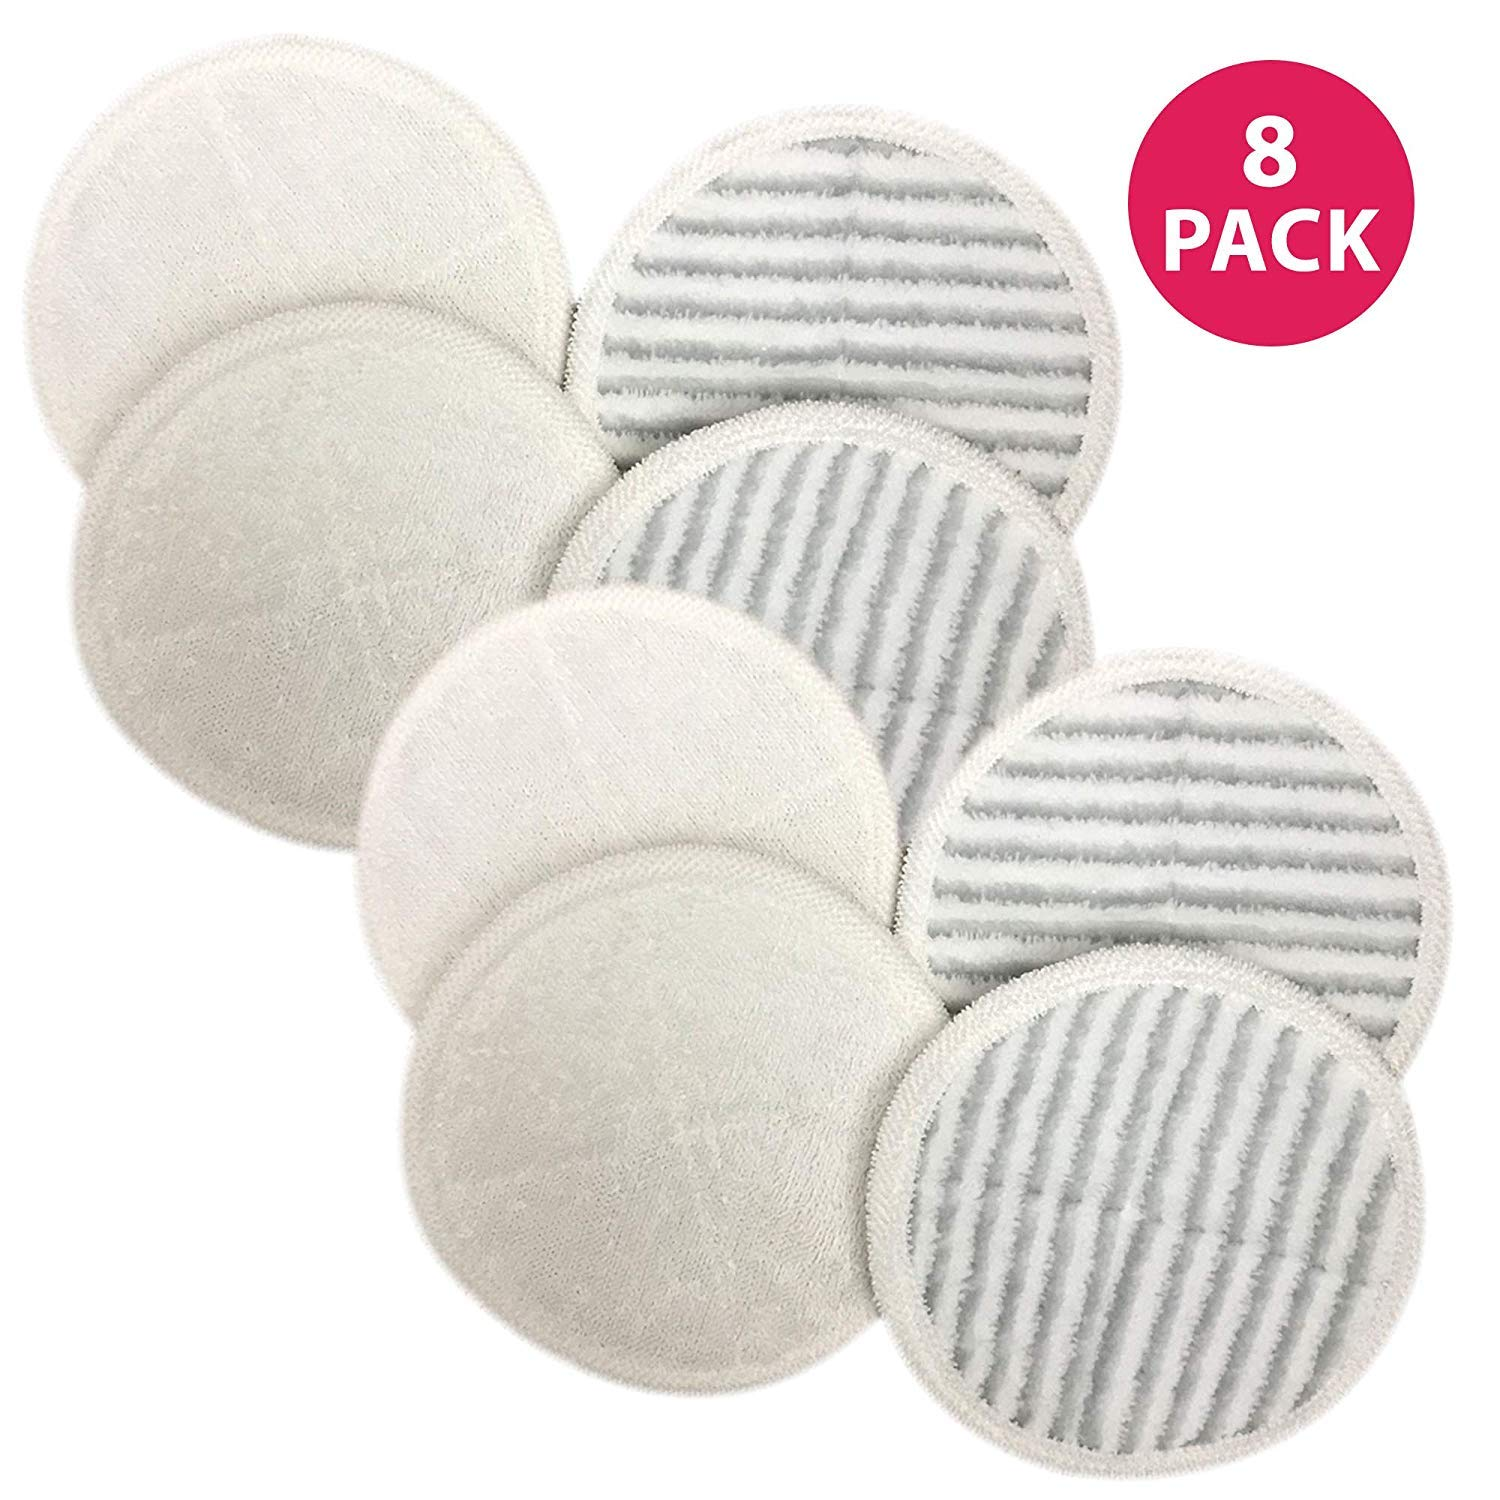 Think Crucial Replacement Mop Pads Compatible with Bissell Spinwave Mop Pad Heads Parts - Perfect for Models 13122, 13129, 13151, 13139 - Home and Office Use - Pair with Part 2124 - Bulk (8 Pack)